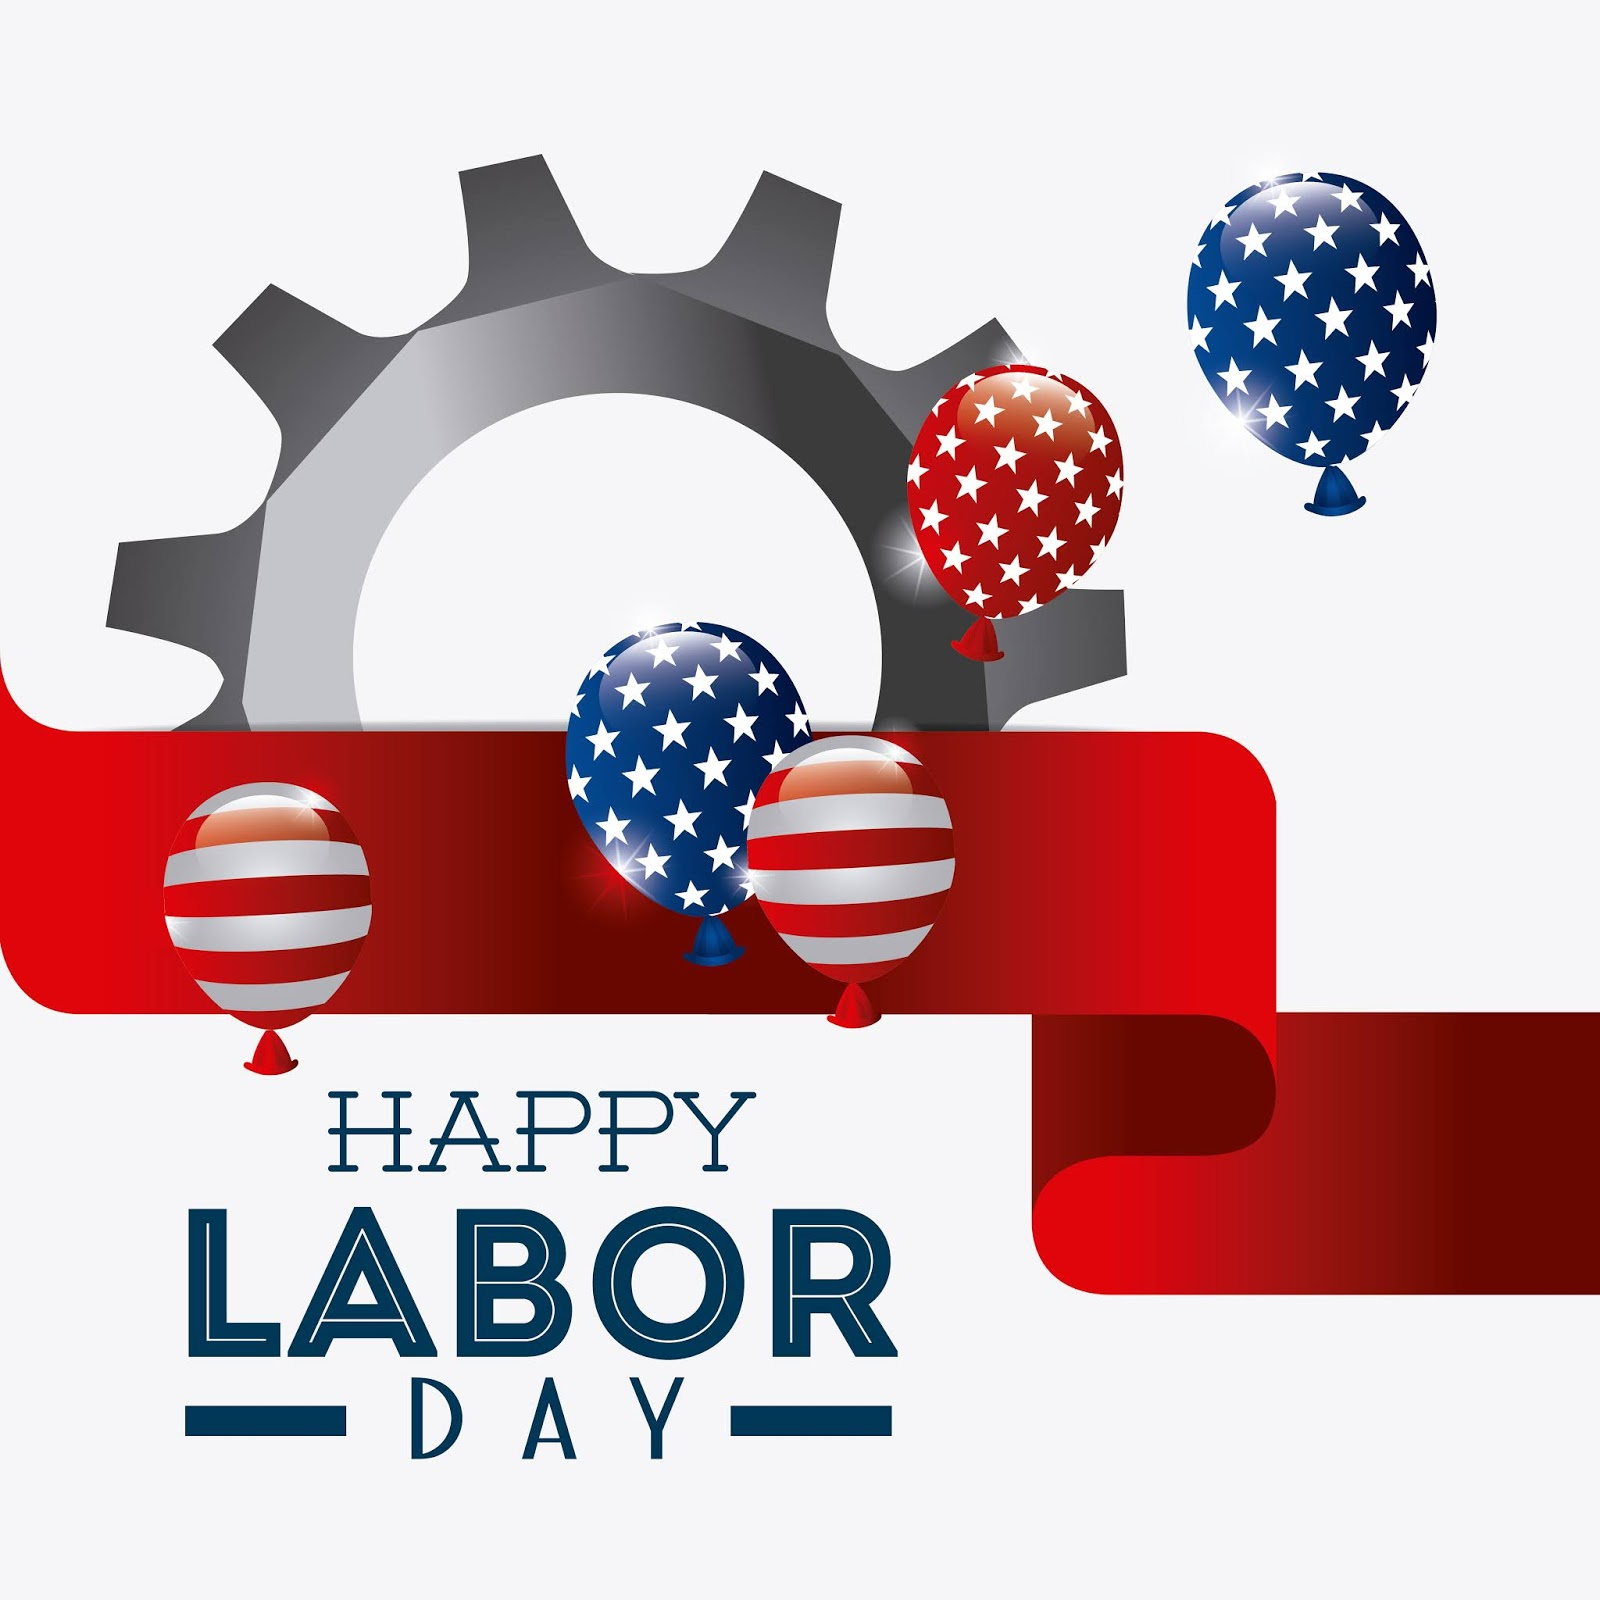 Happy Labor Day Design Free Download Vector CDR, AI, EPS and PNG Formats